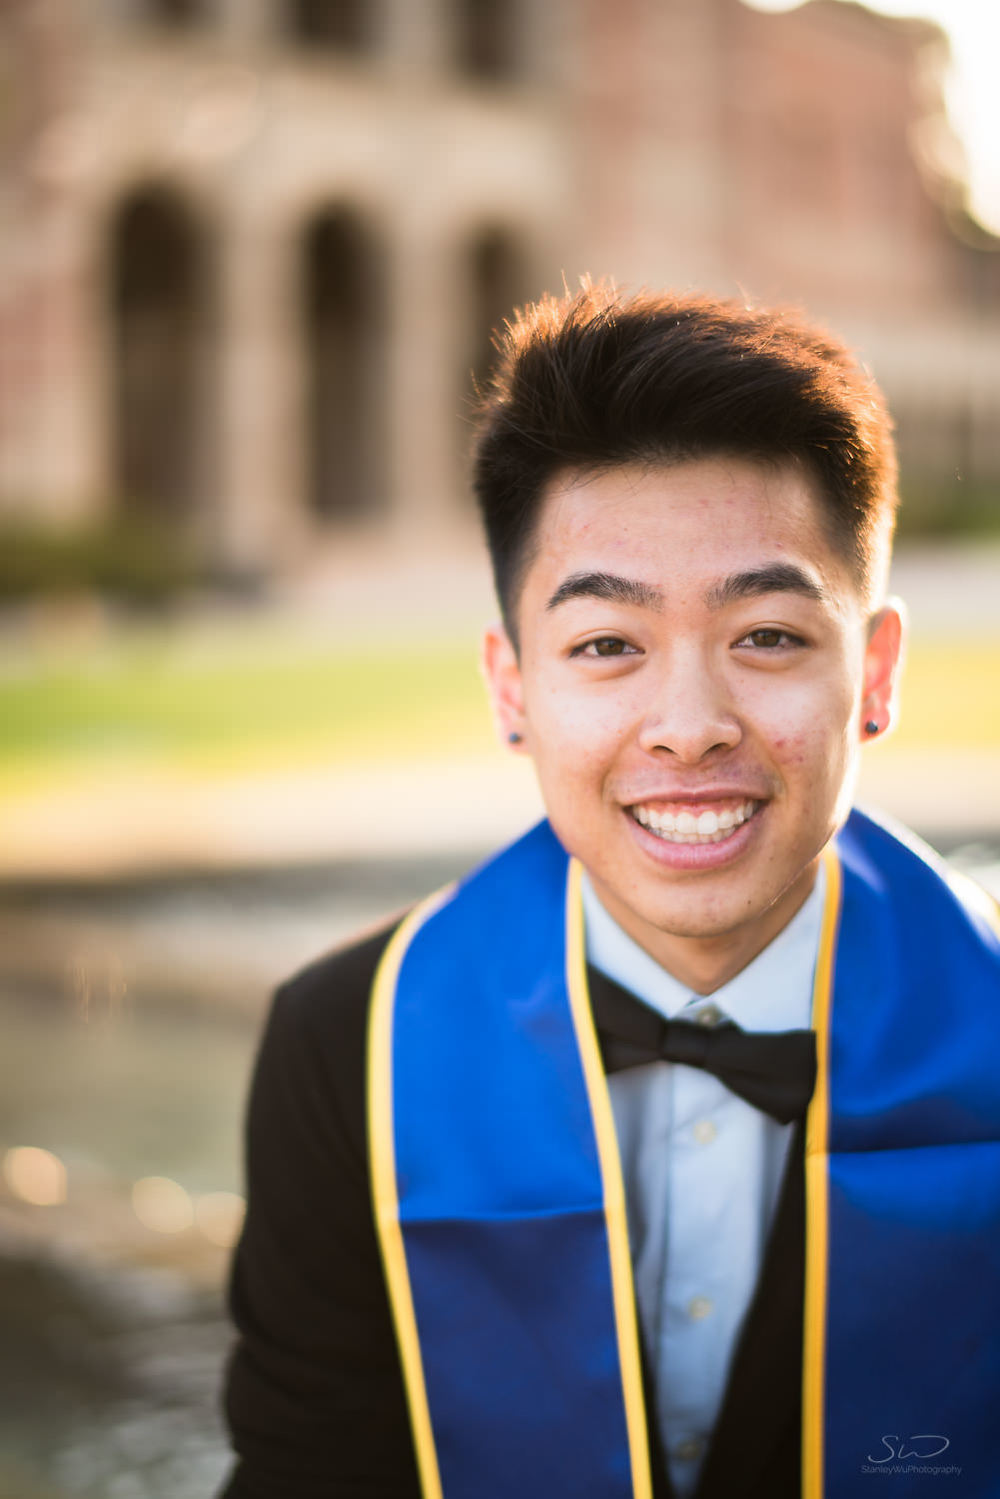 ucla-senior-grad-portraits-7.jpg